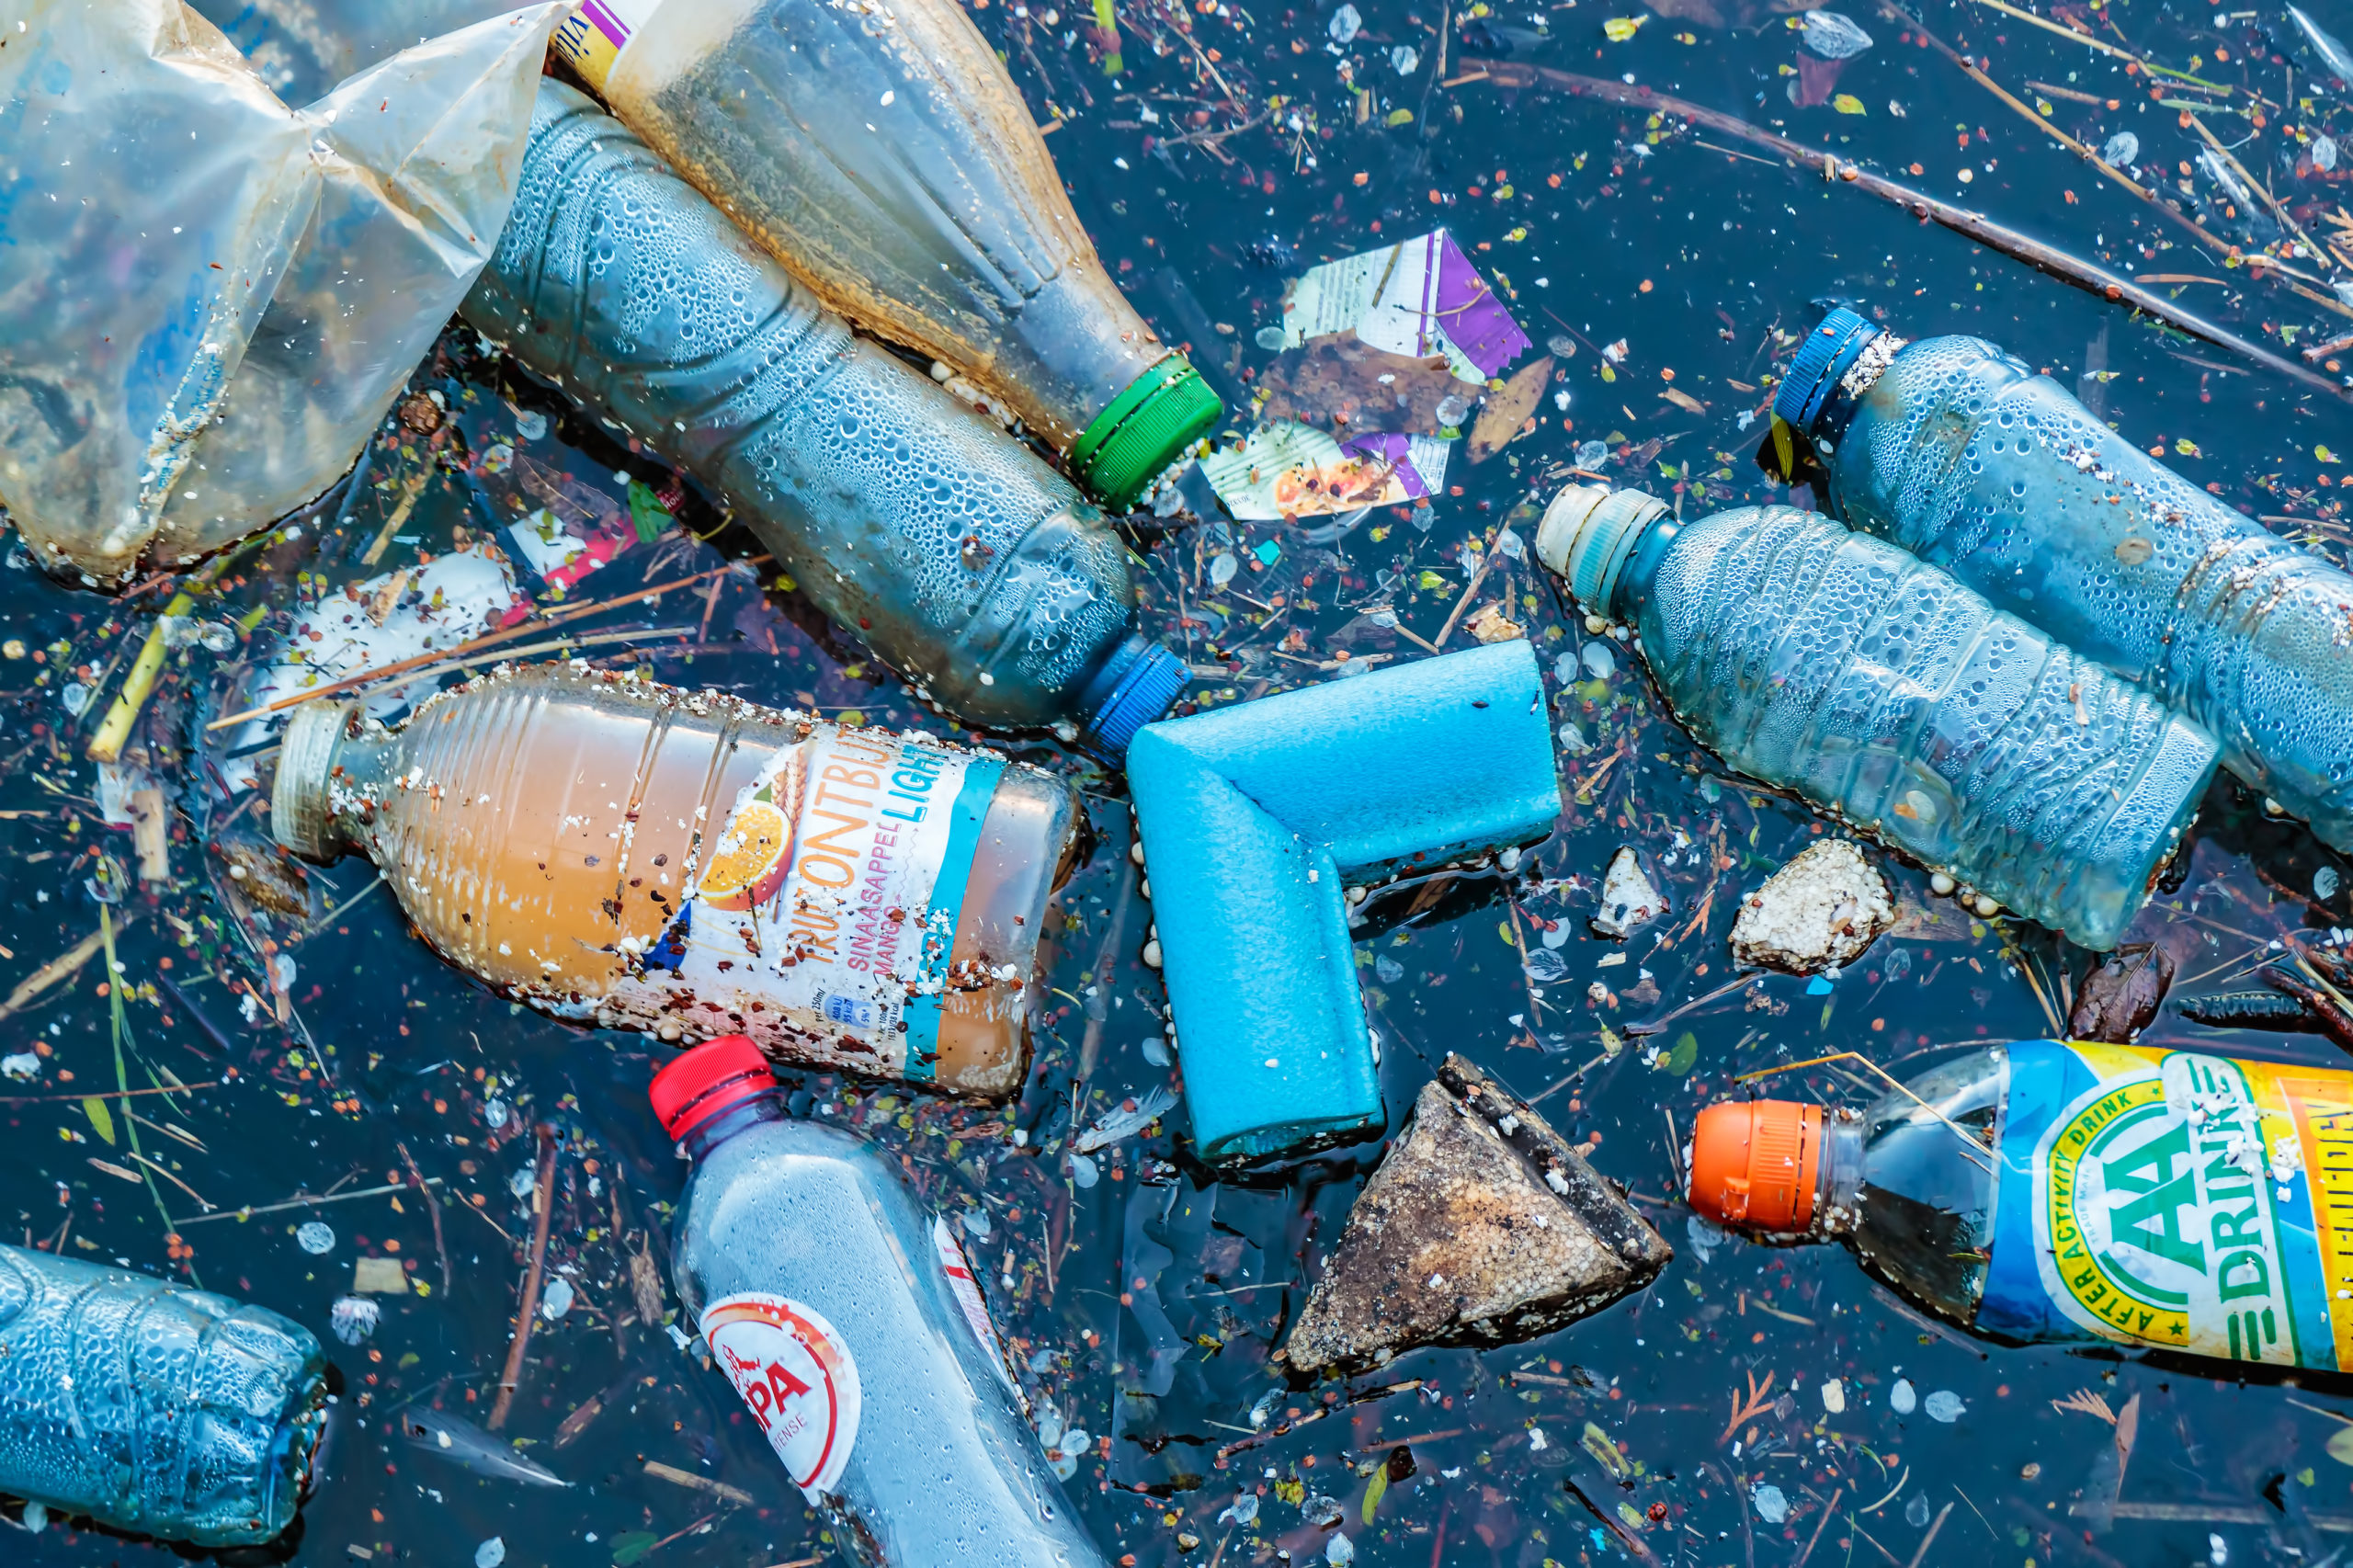 Plastic waste floating in a canal in Amsterdam, The Netherlands.